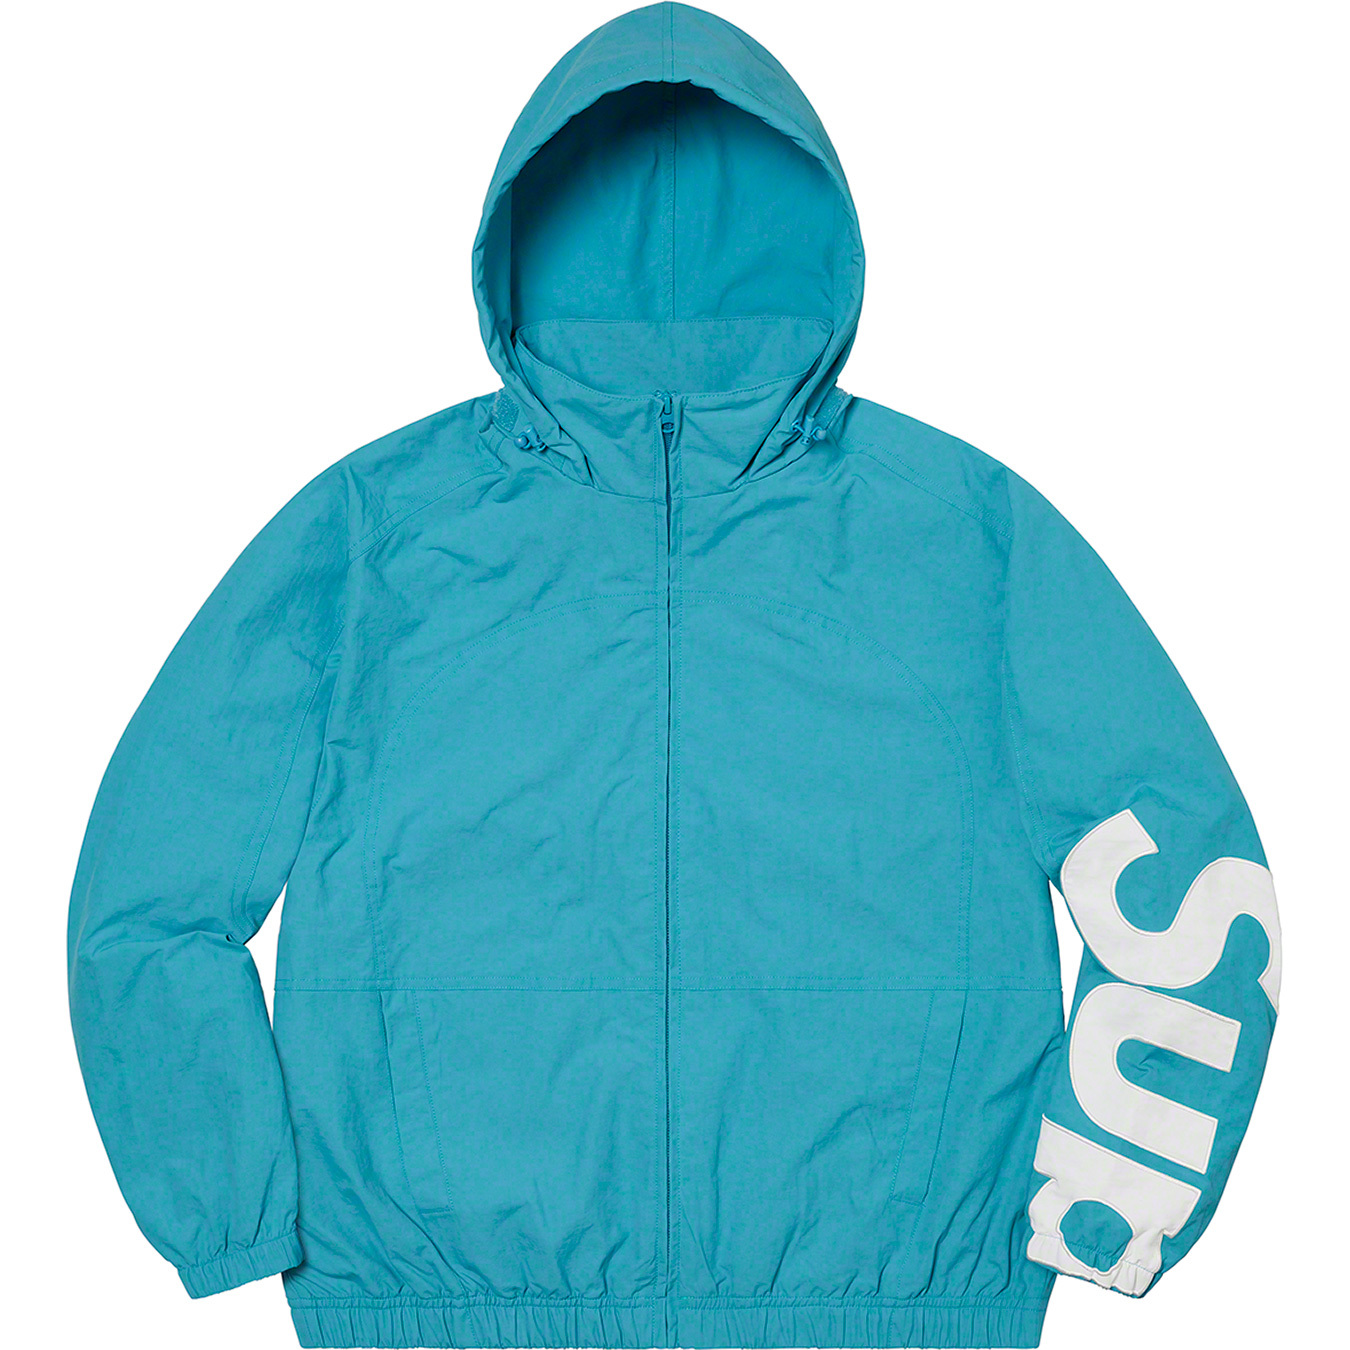 supreme-21ss-spring-summer-spellout-track-jacket